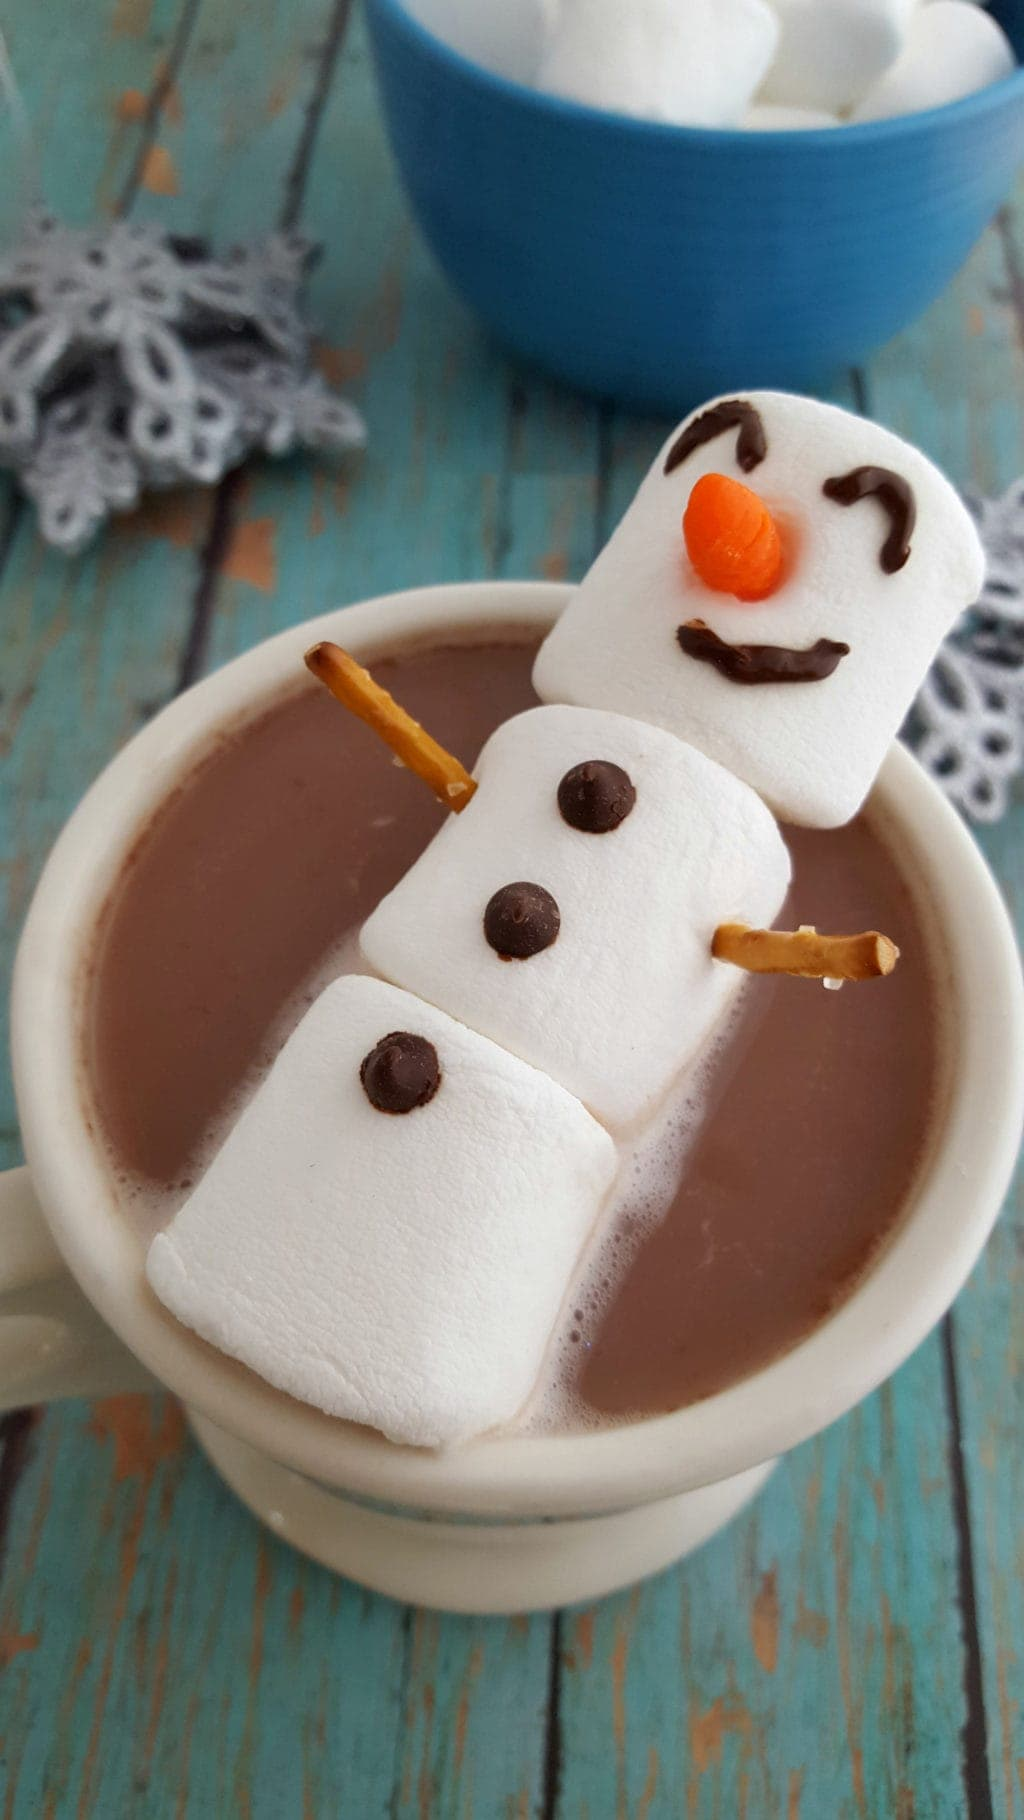 How To Make Marshmallow Snowman For Hot Chocolate